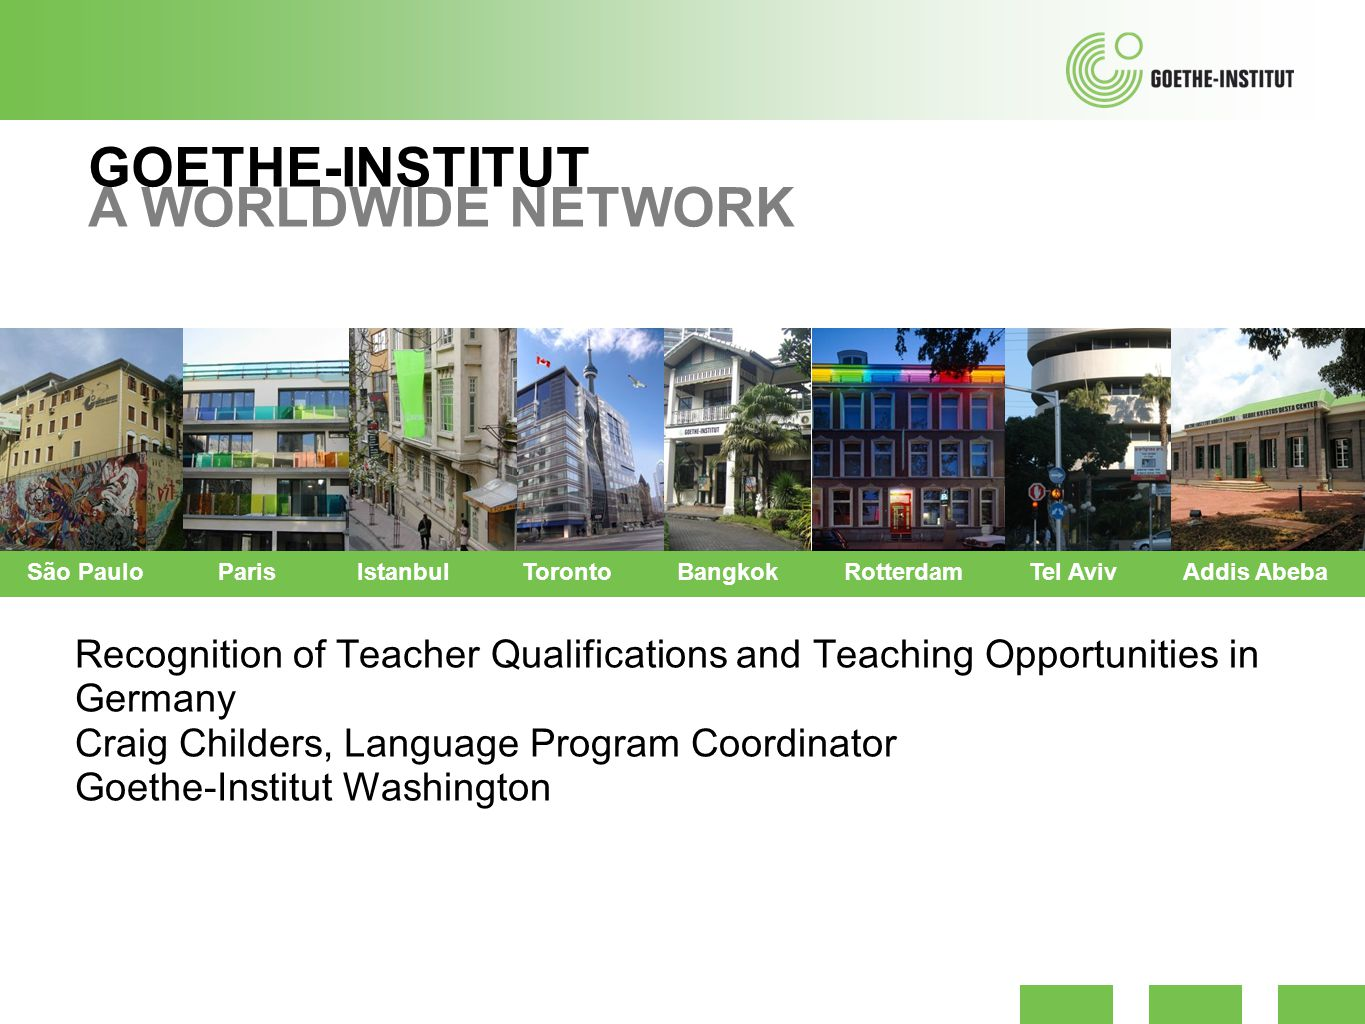 http://slideplayer.com/slide/2976170/11/images/2/GOETHE-INSTITUT+A+WORLDWIDE+NETWORK.jpg